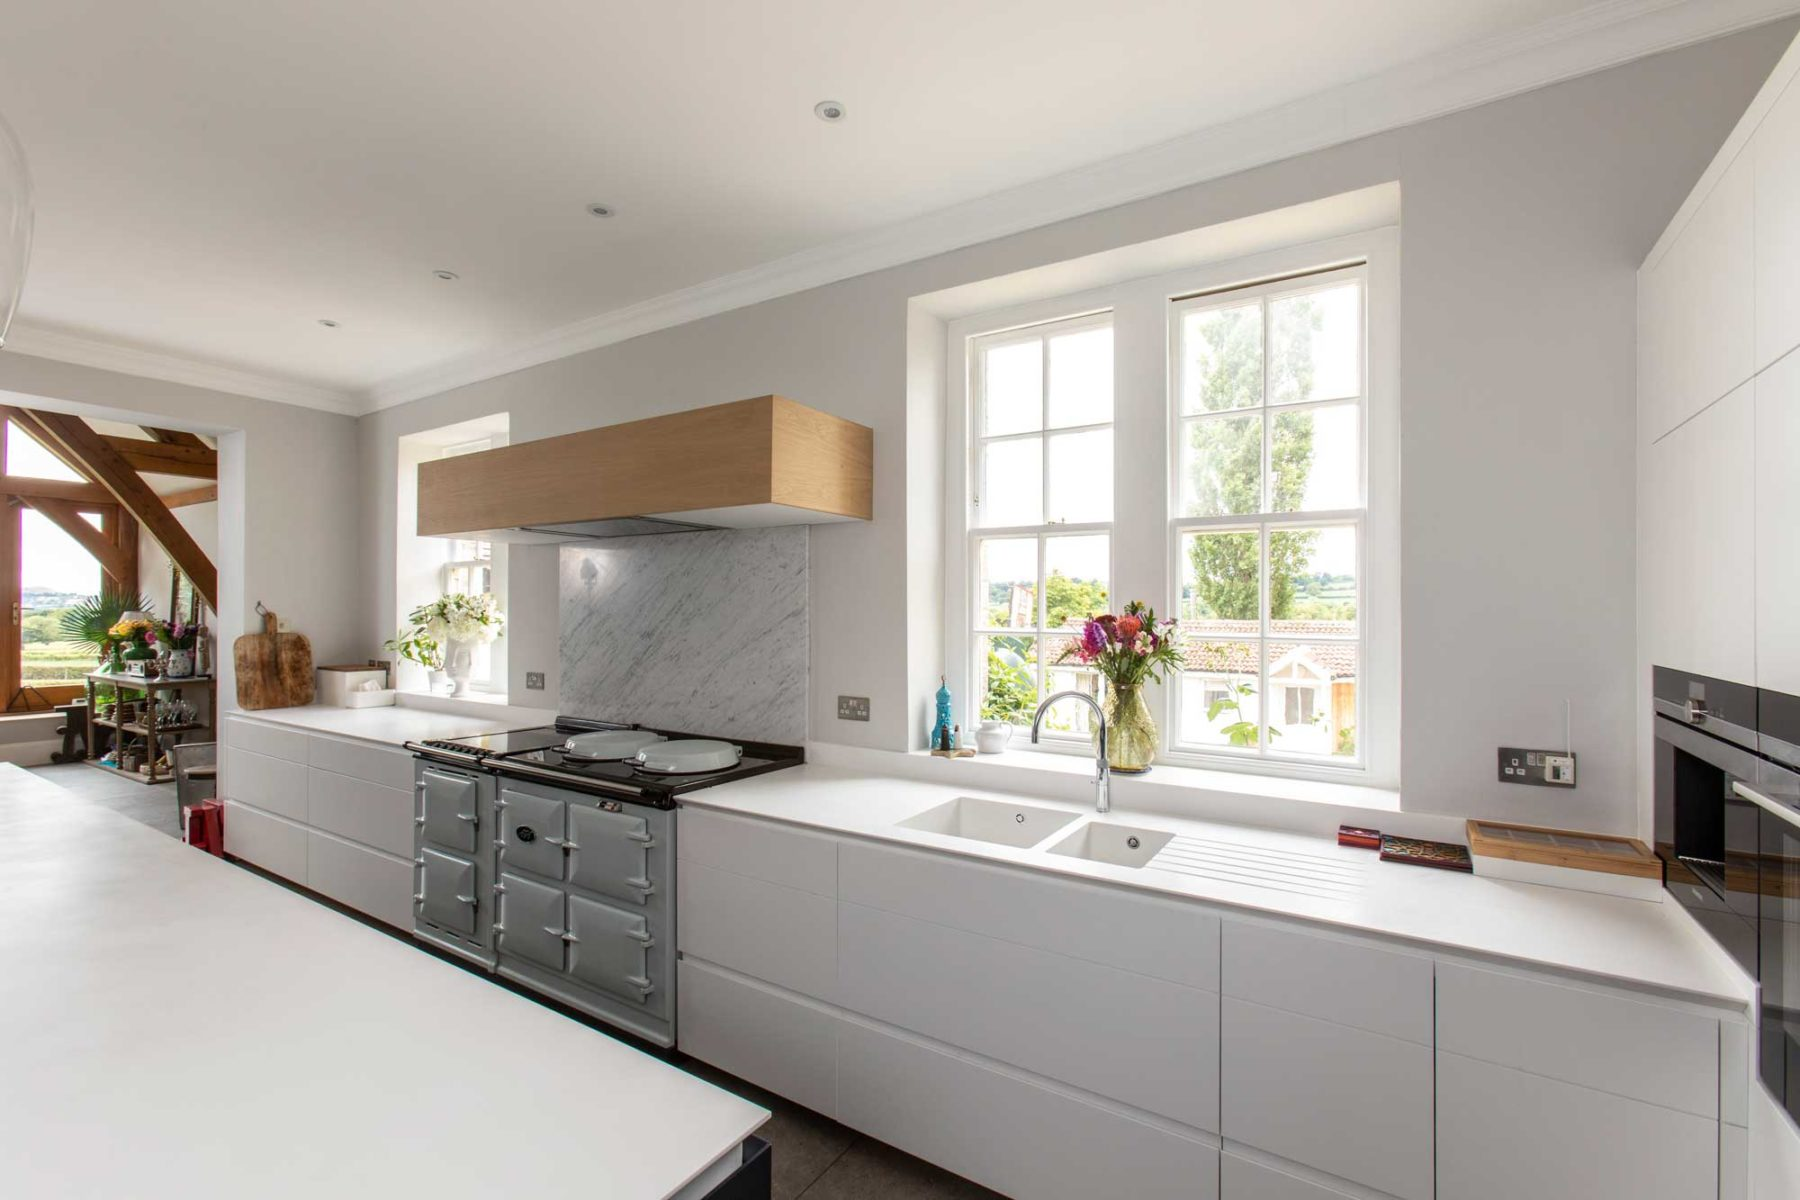 Modern kitchen with AGA